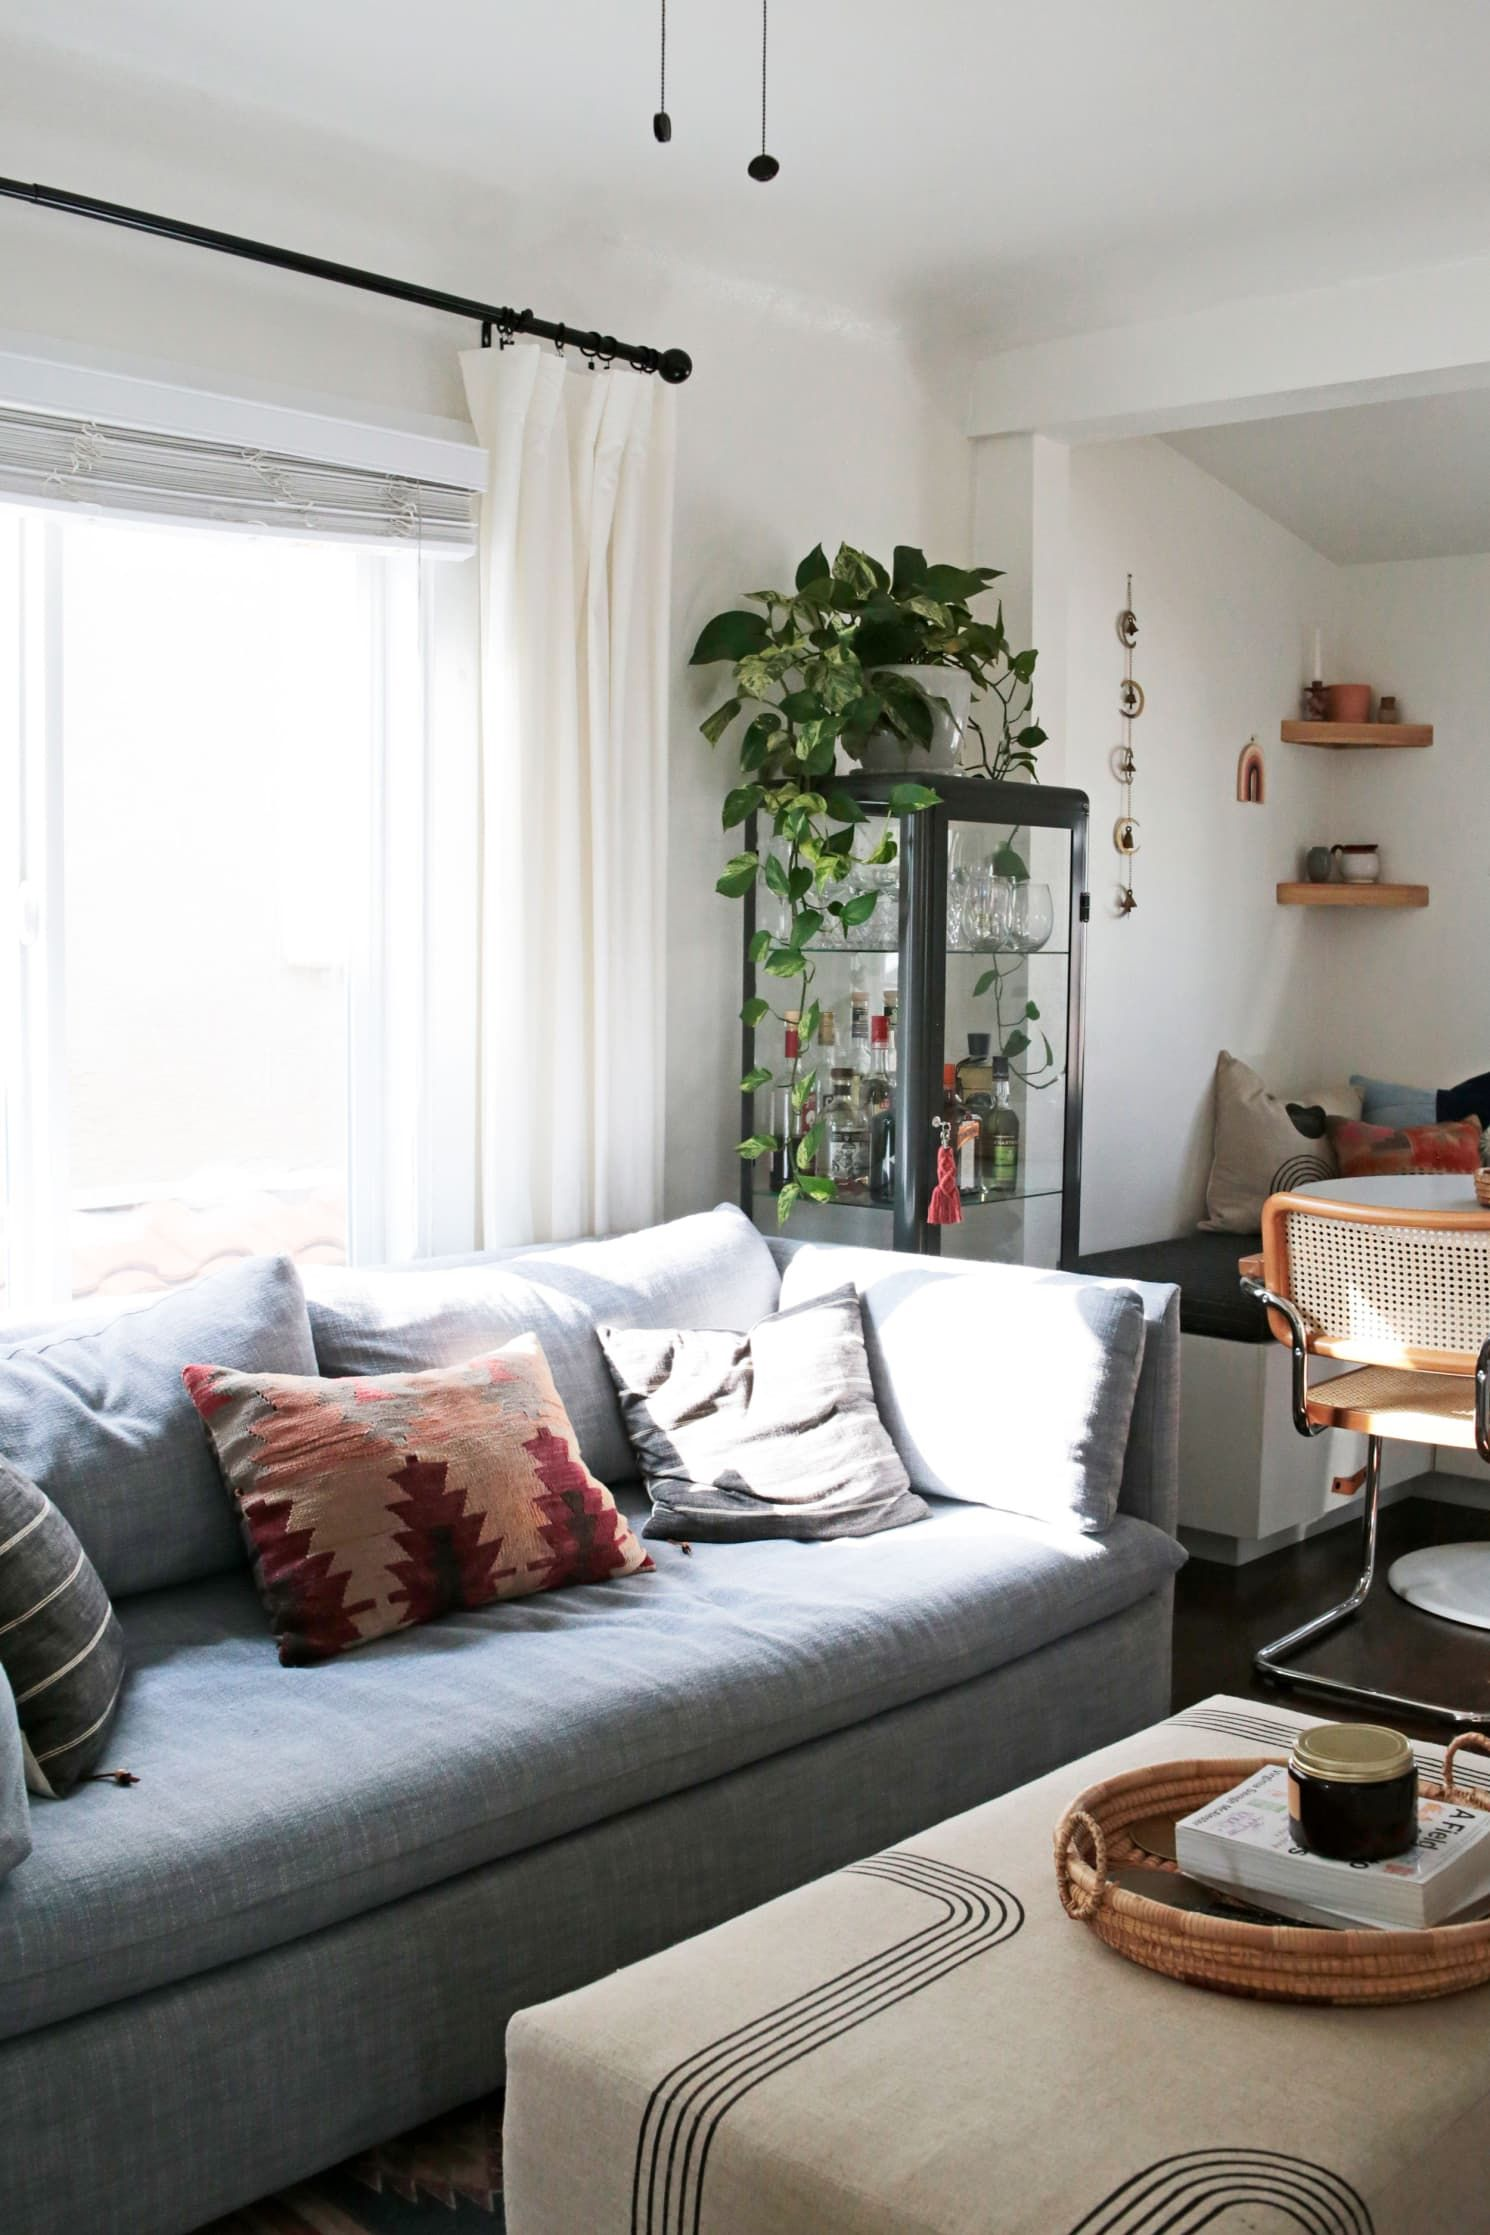 SmallSpace Solutions (and Lots of Natural Light) Make